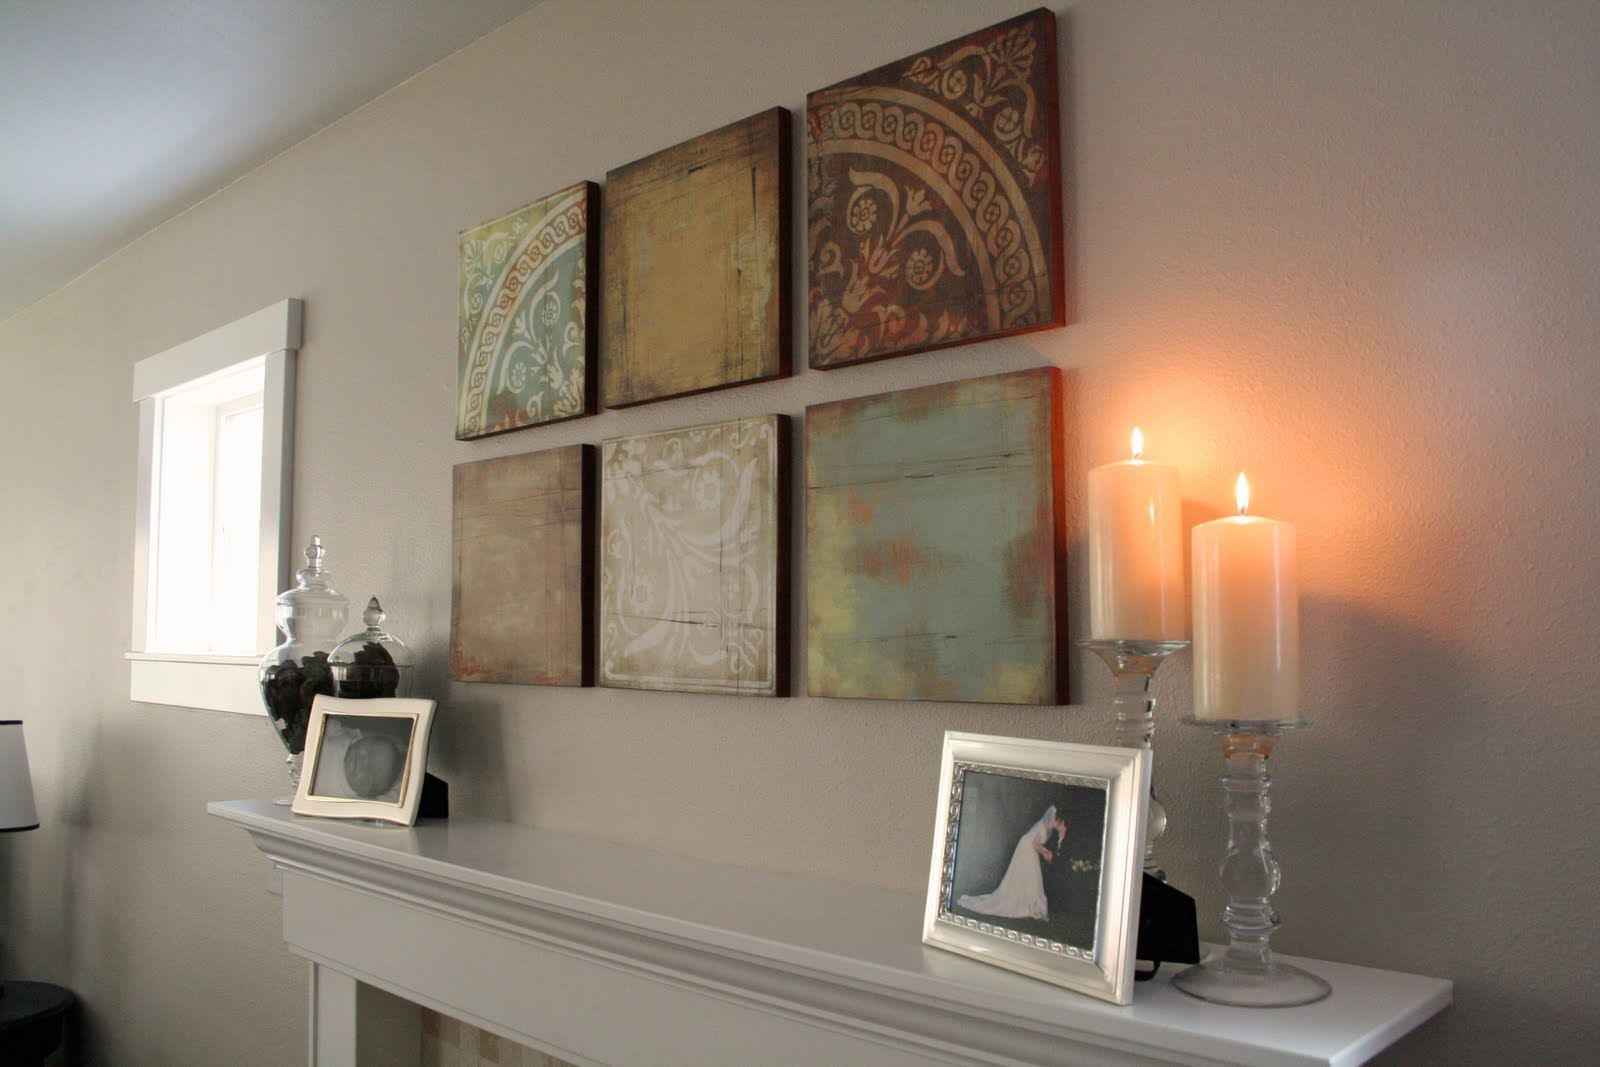 How to make scrapbook creative - This Is So Creative She Used Mdf And Scrapbook Paper To Make Beautiful Wall Art